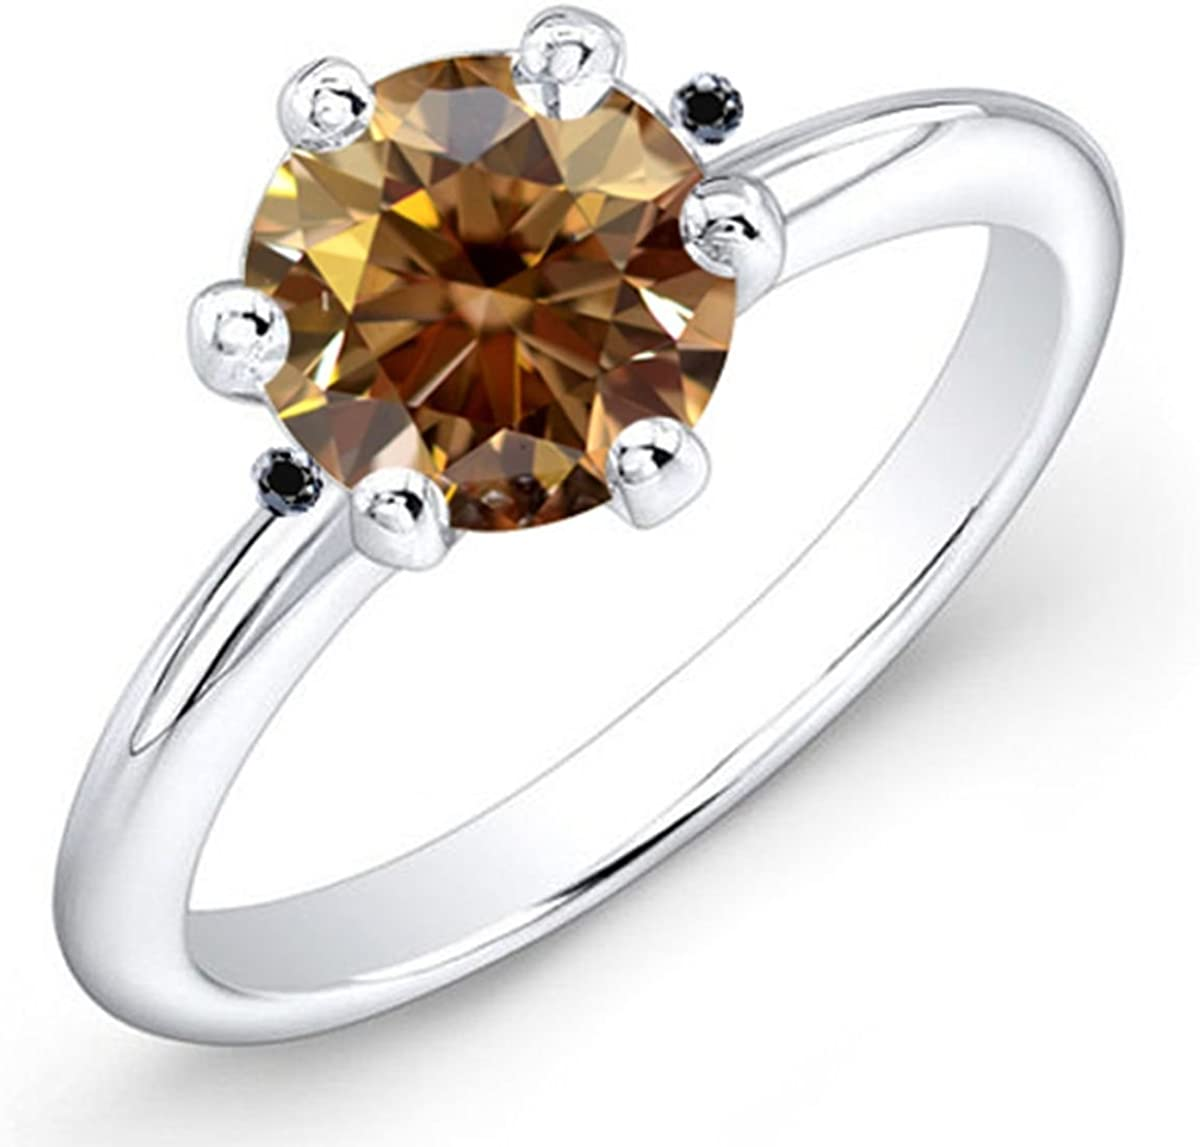 RINGJEWEL 3.33 ct Vs1 Round Real Moissanite Solitaire Engagement /& Wedding Ring white Brown Size 7